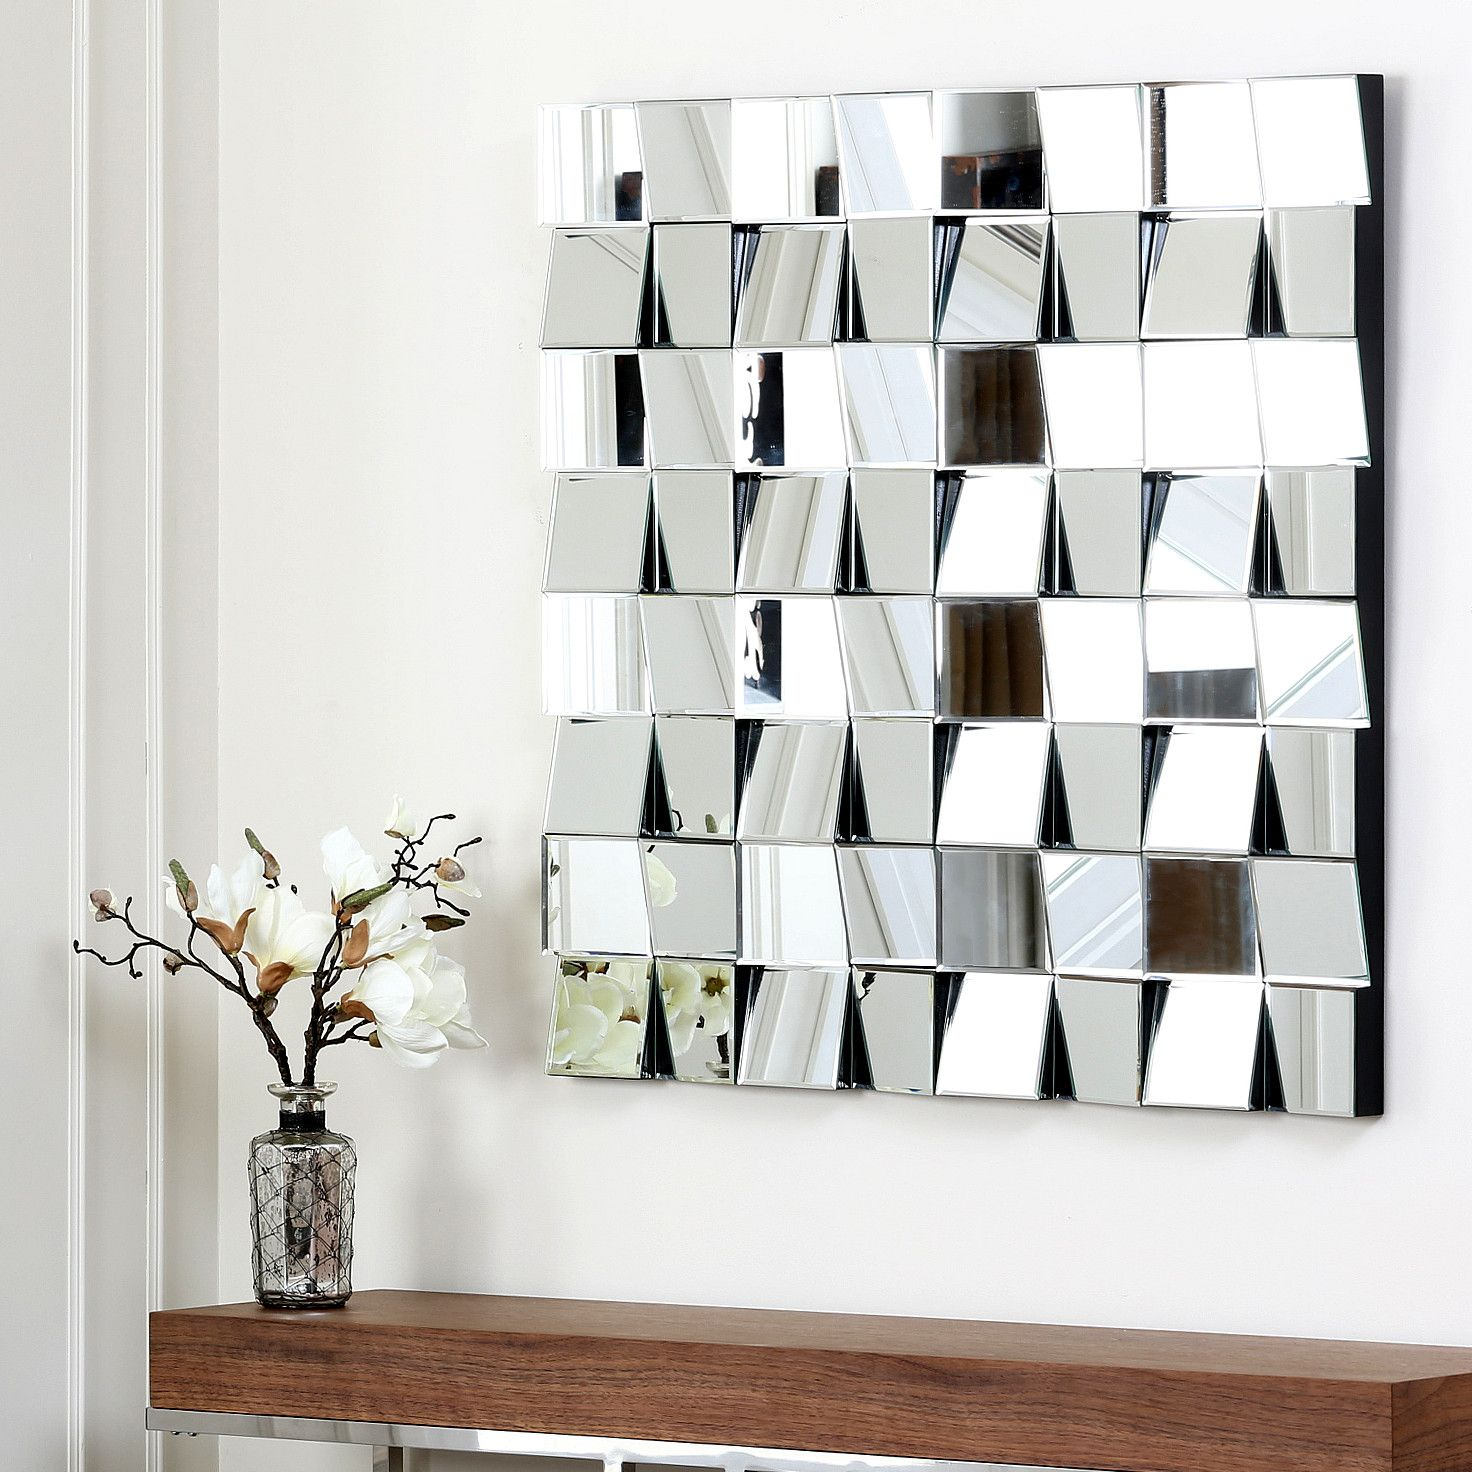 Abbyson Living Isabelle Wall Mirror | Diana Ross Room | Pinterest ...